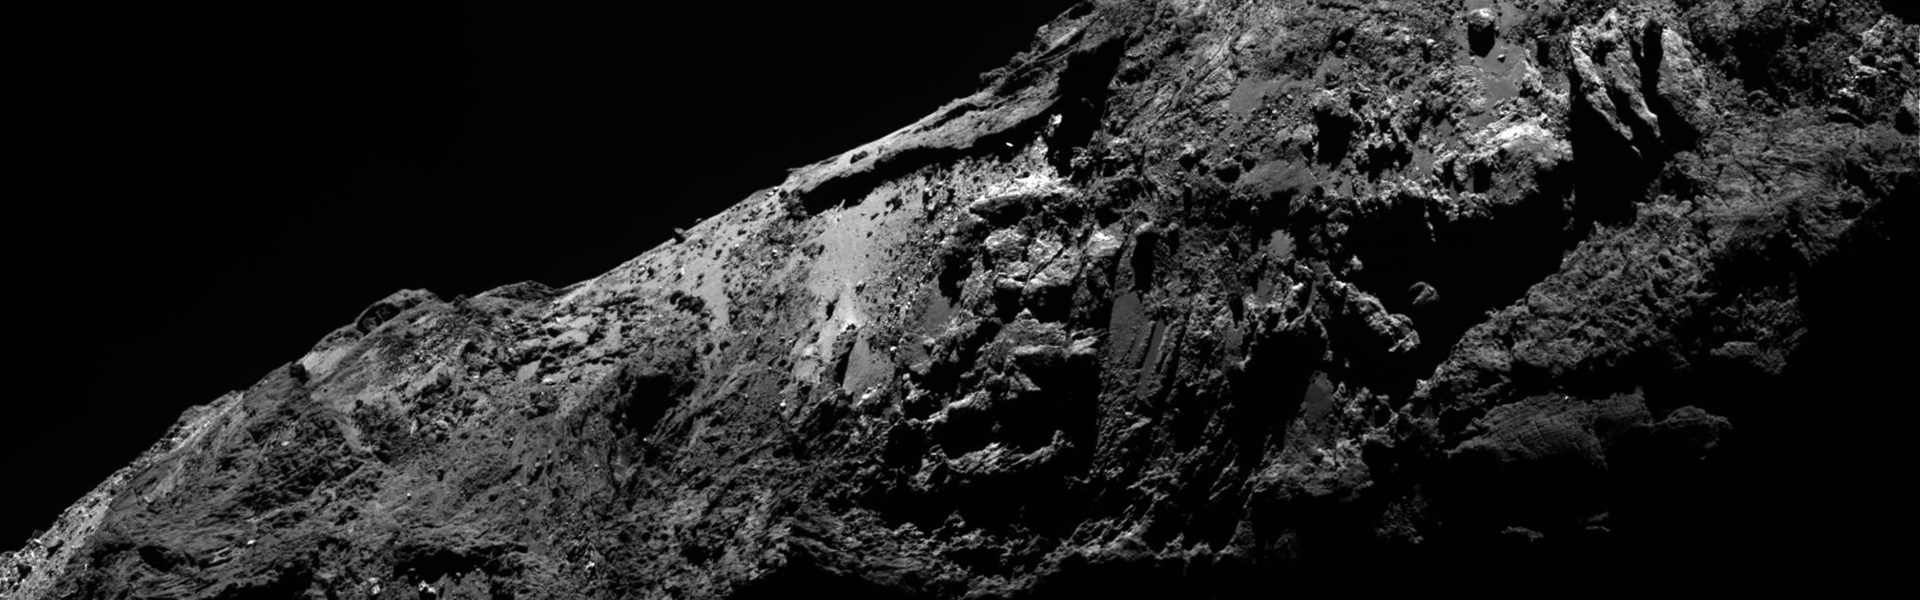 Comet viewed from Rosetta